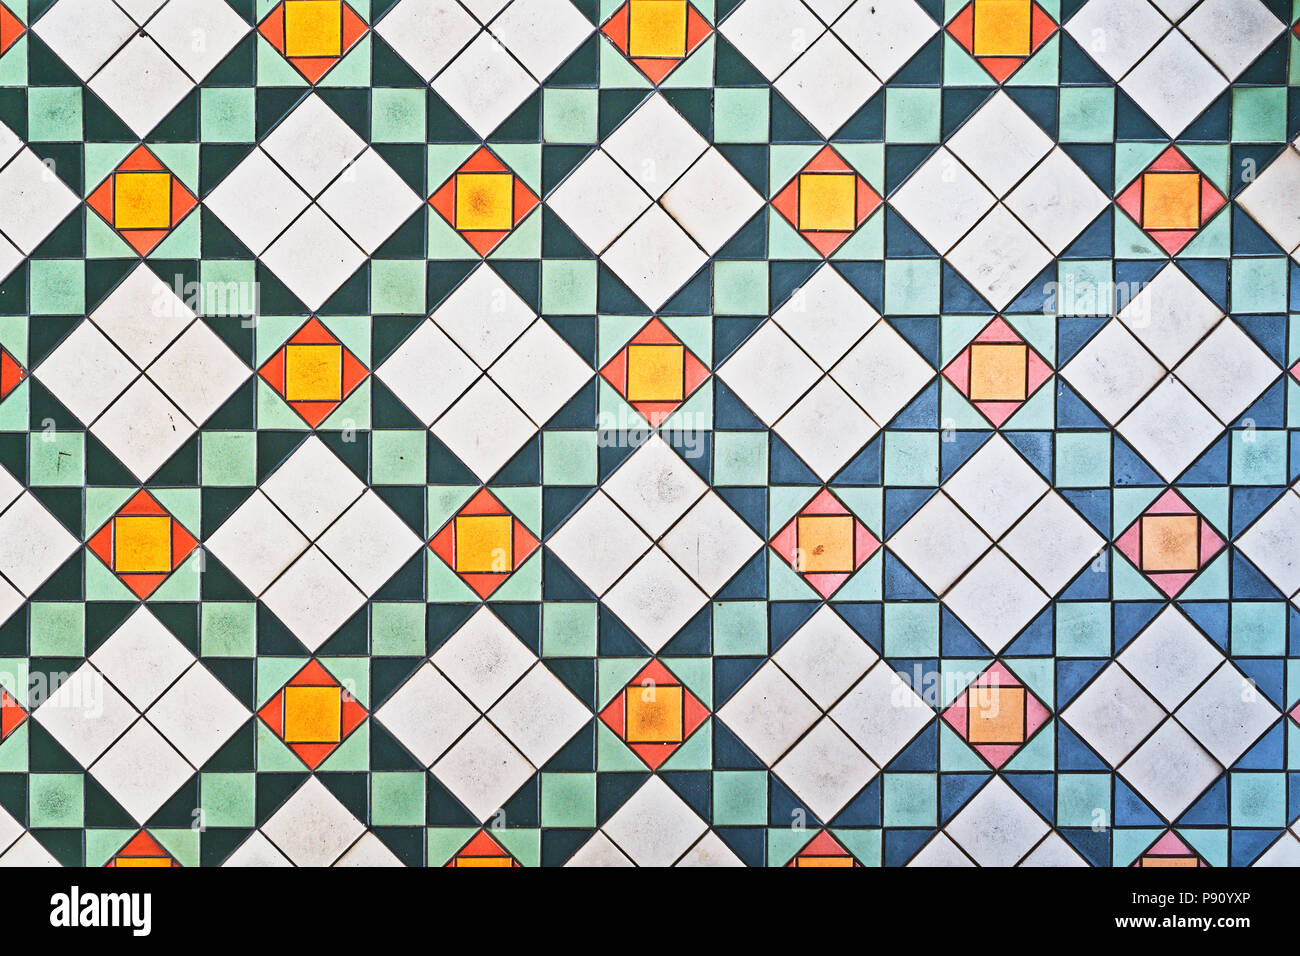 Vintage floor tiles from old houses in Singapore. This type of design dates back to the colonial era. - Stock Image